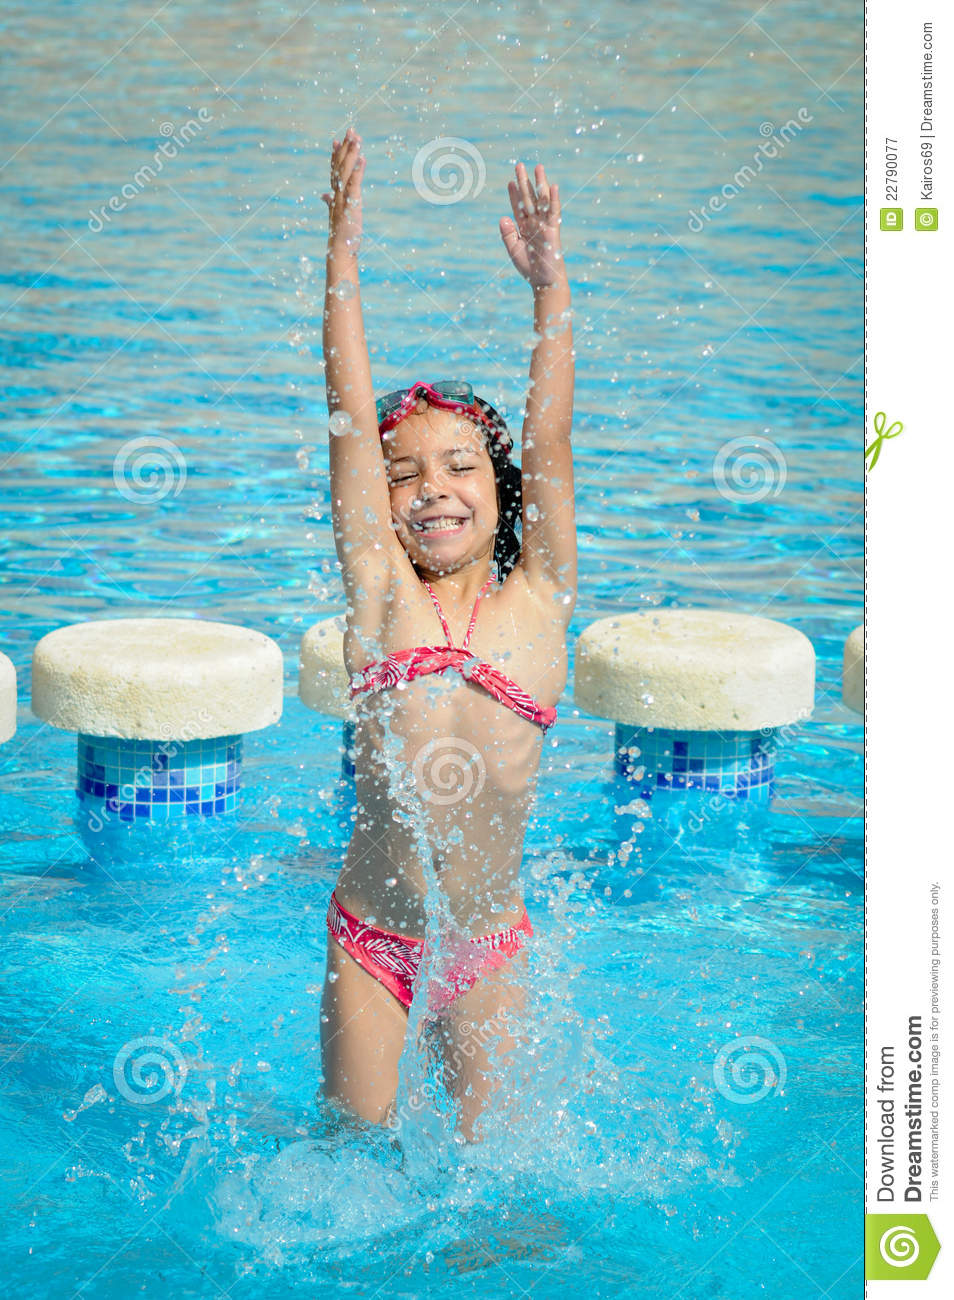 Free Swimming Pool: Splashes In A Swimming Pool Stock Image